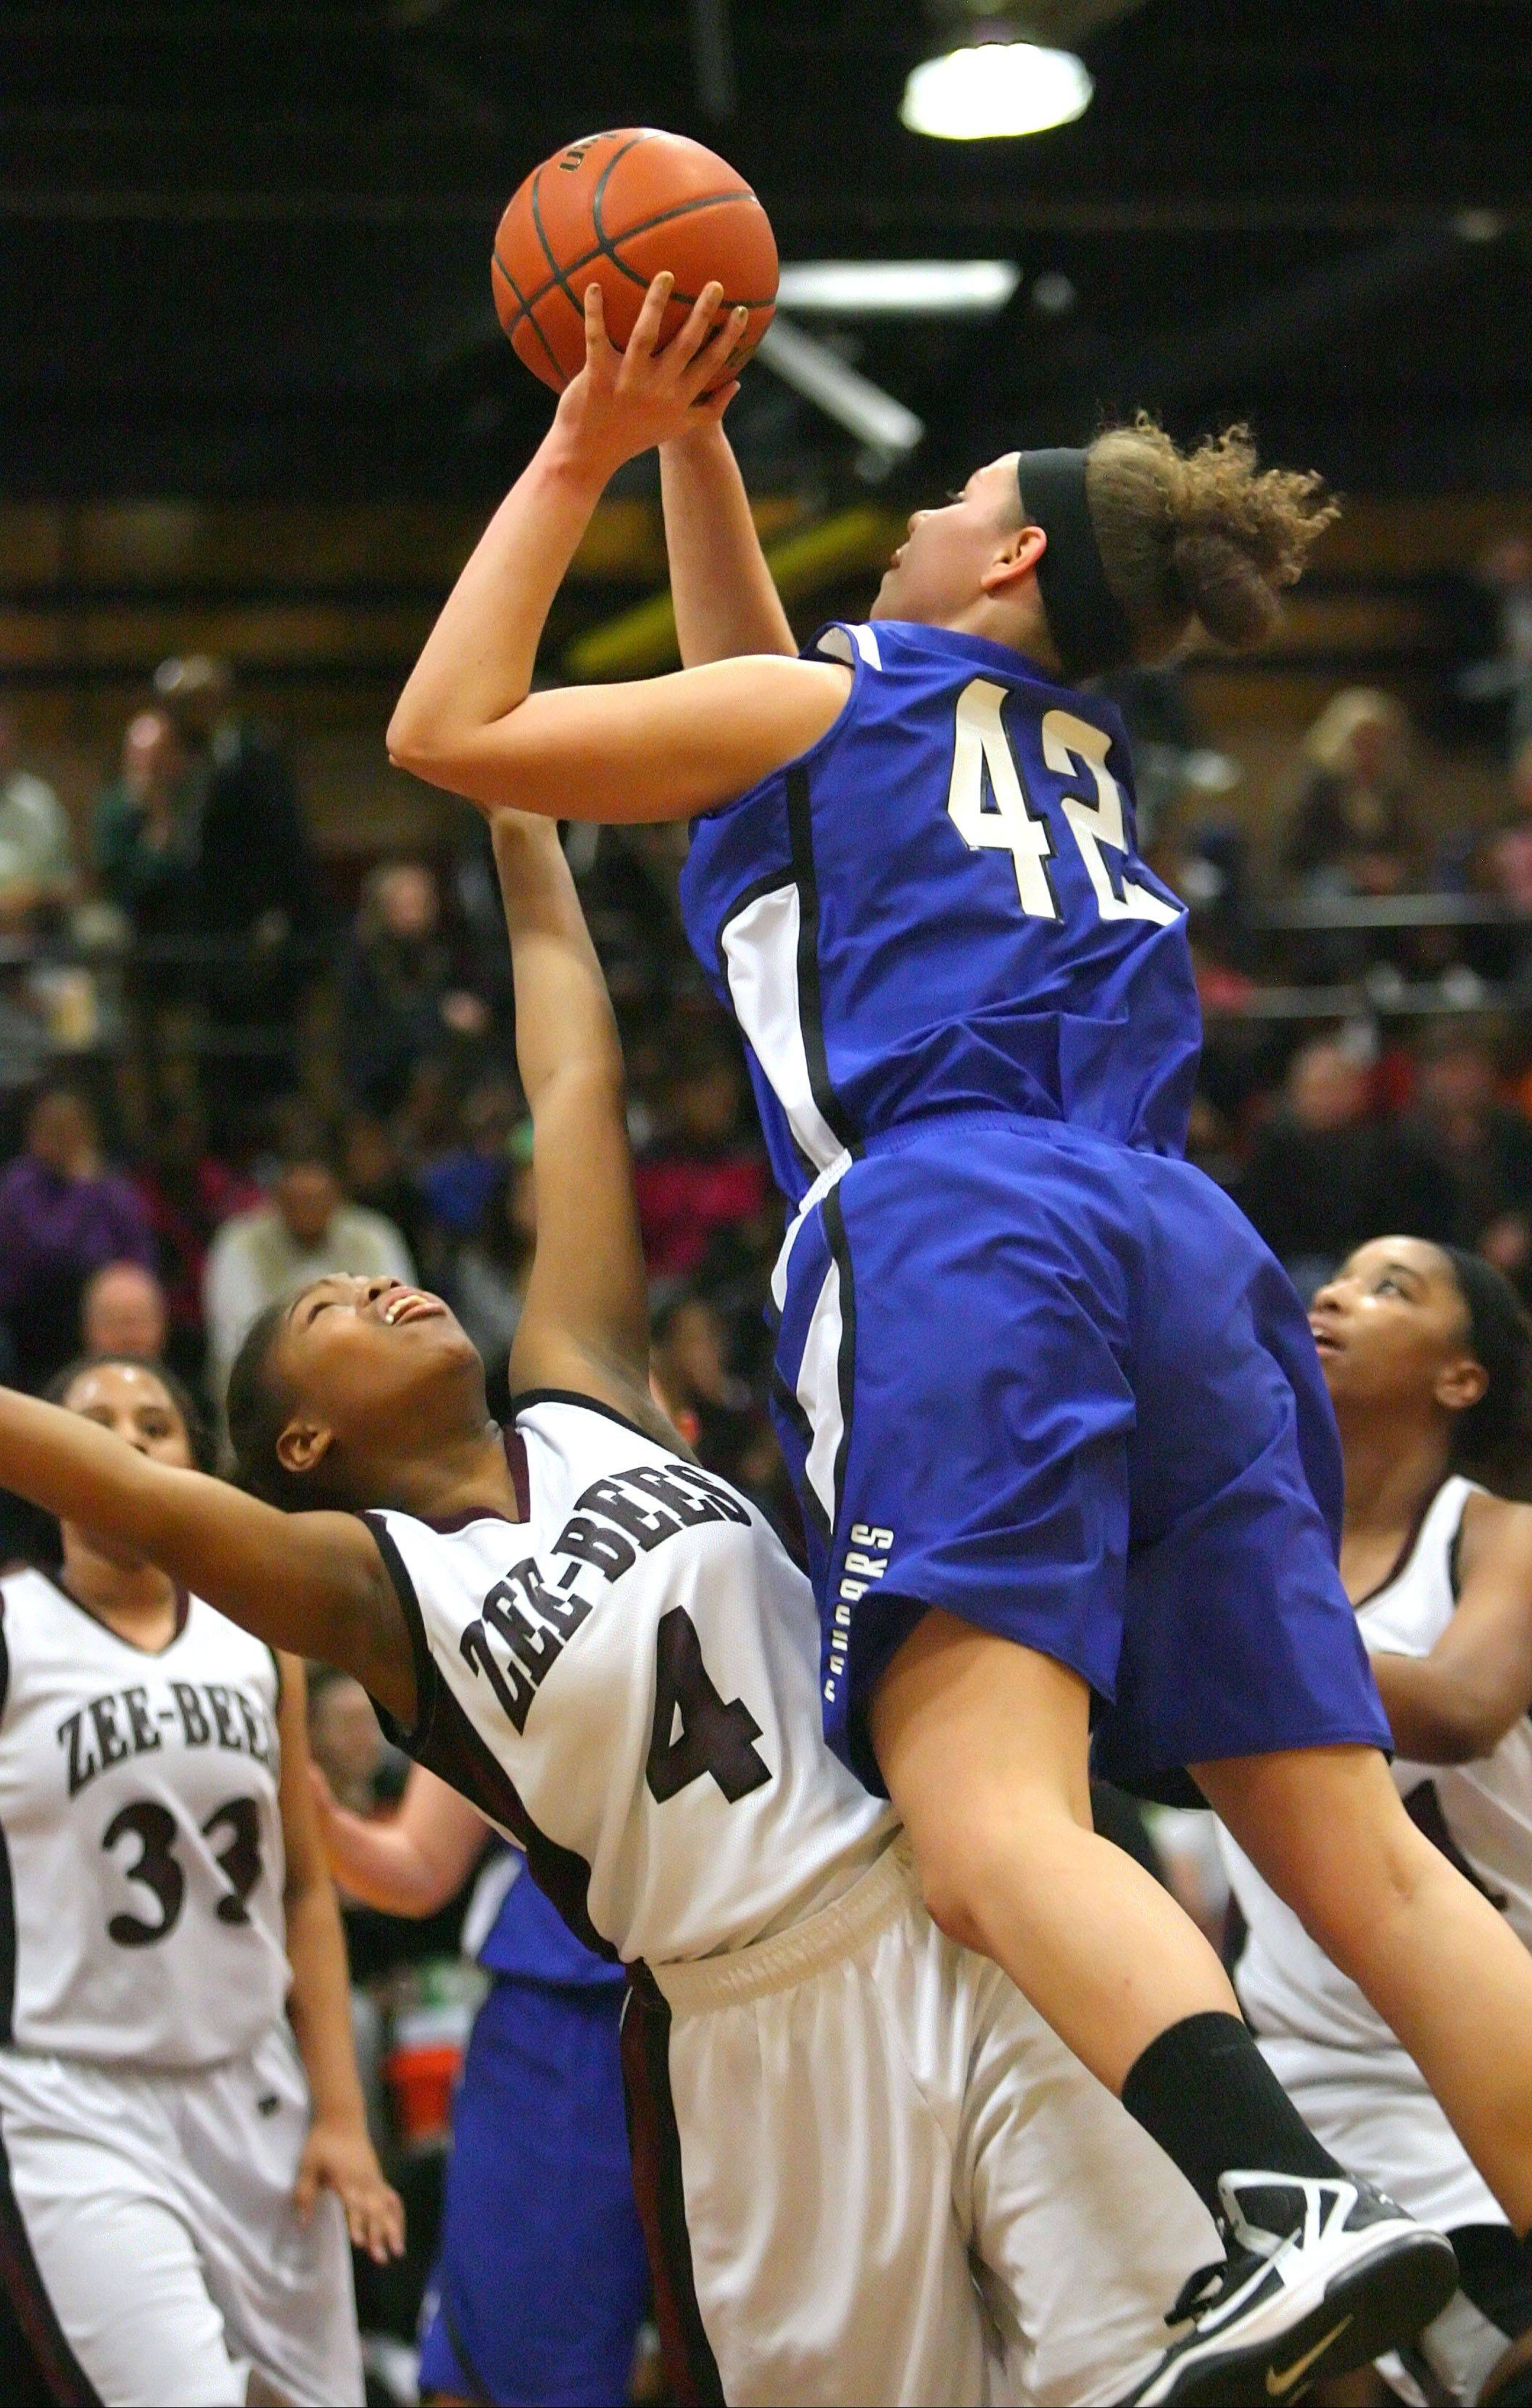 Vernon Hills' Lauren Webb, right, drives on Zion-Benton's Krystal Walker during the NSC title game Wednesday night at Zion-Benton.